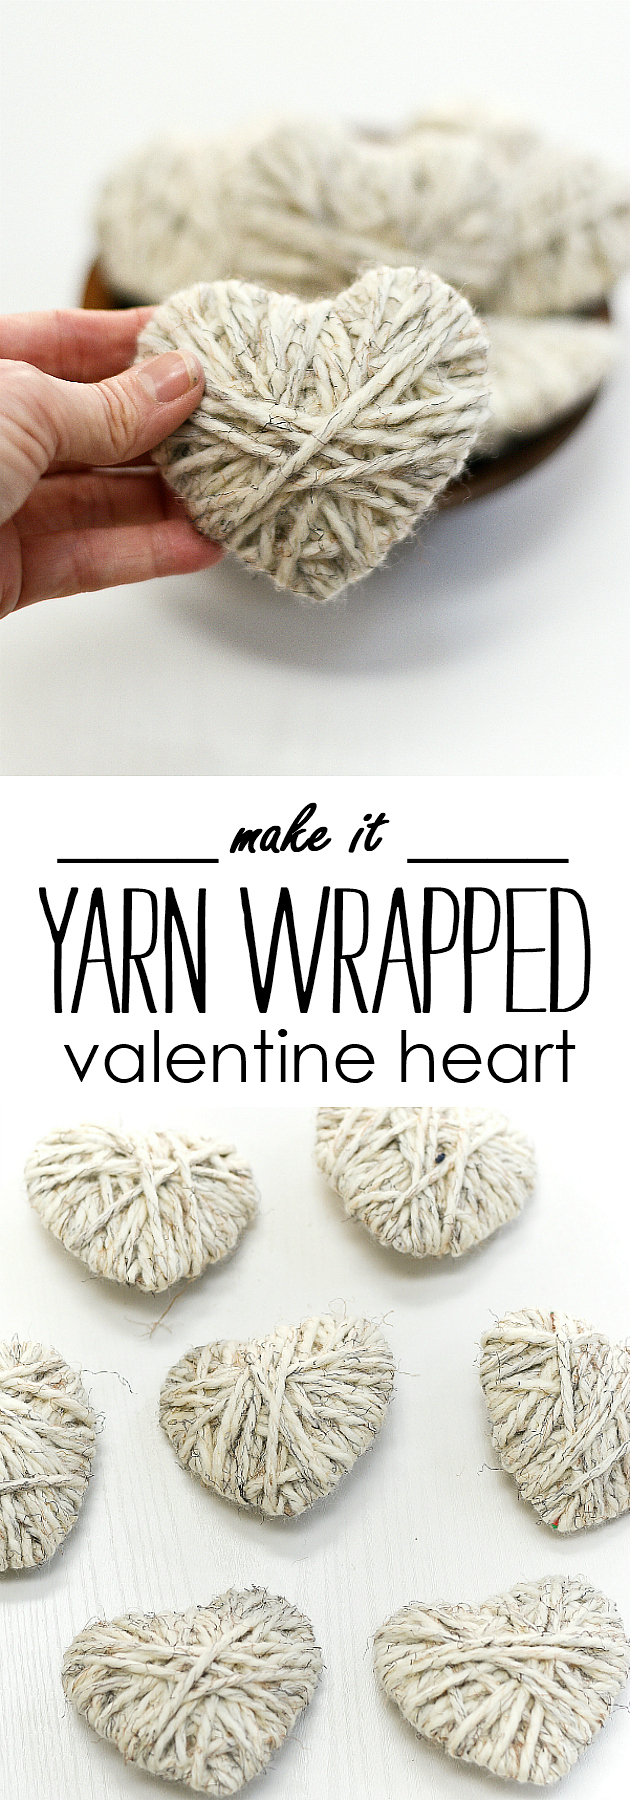 Yarn Wrapped Heart - Valentine Craft Idea in Neutral - Neutral Valentine Decor Ideas